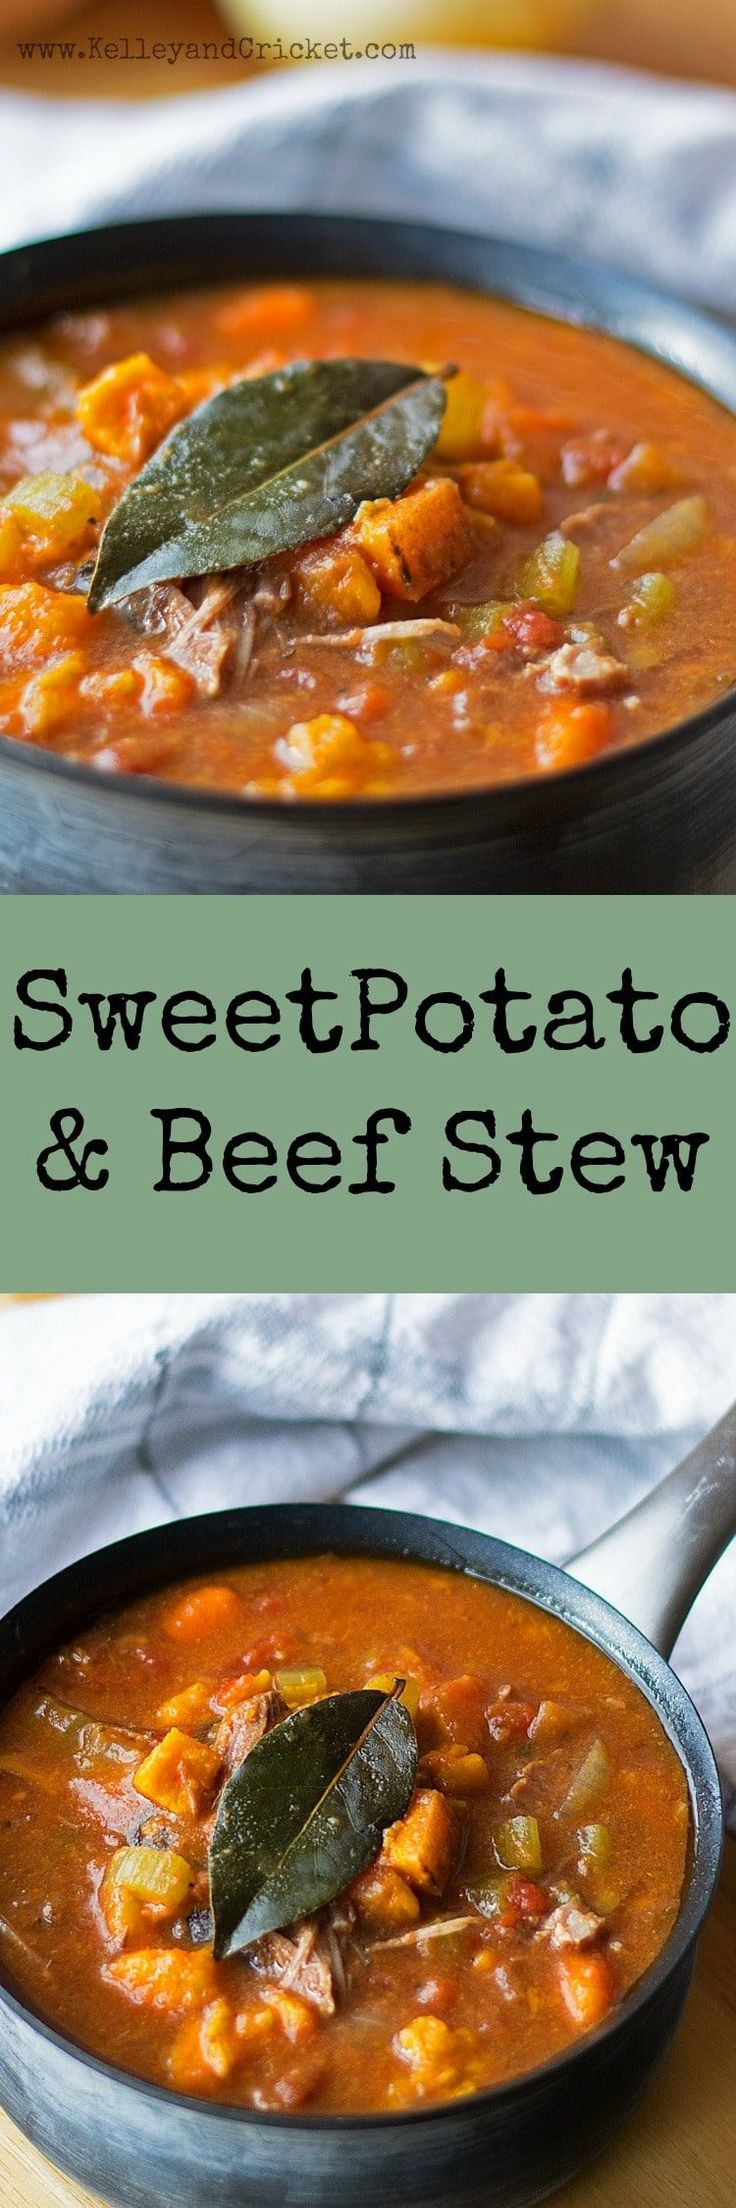 Beef and Sweet Potato Stew Collage